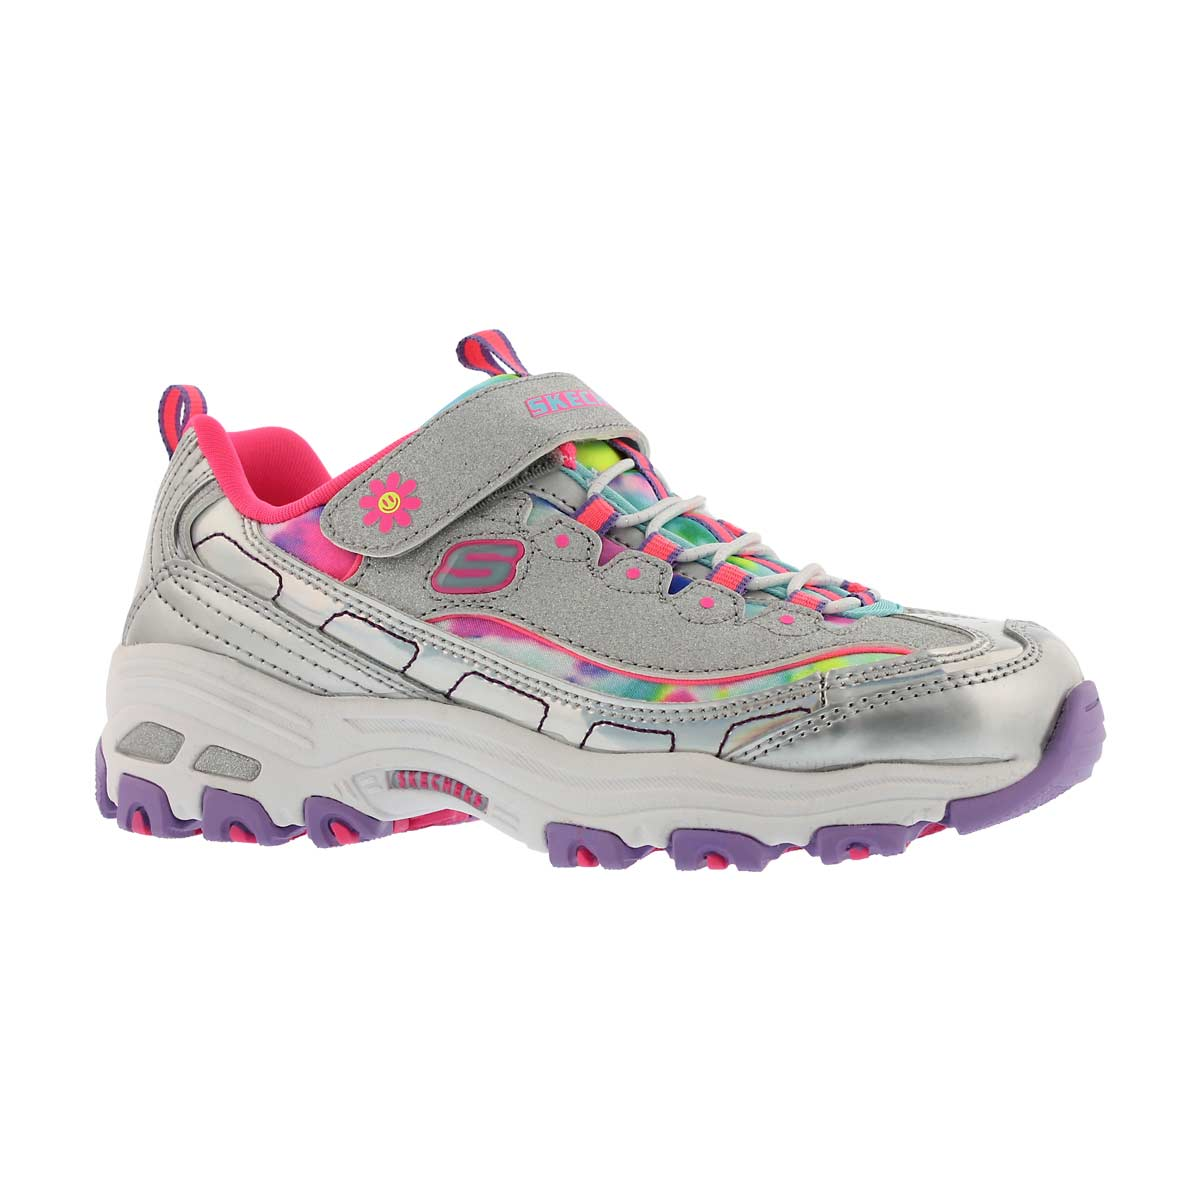 Girls' D'LITES silver/multi sneakers